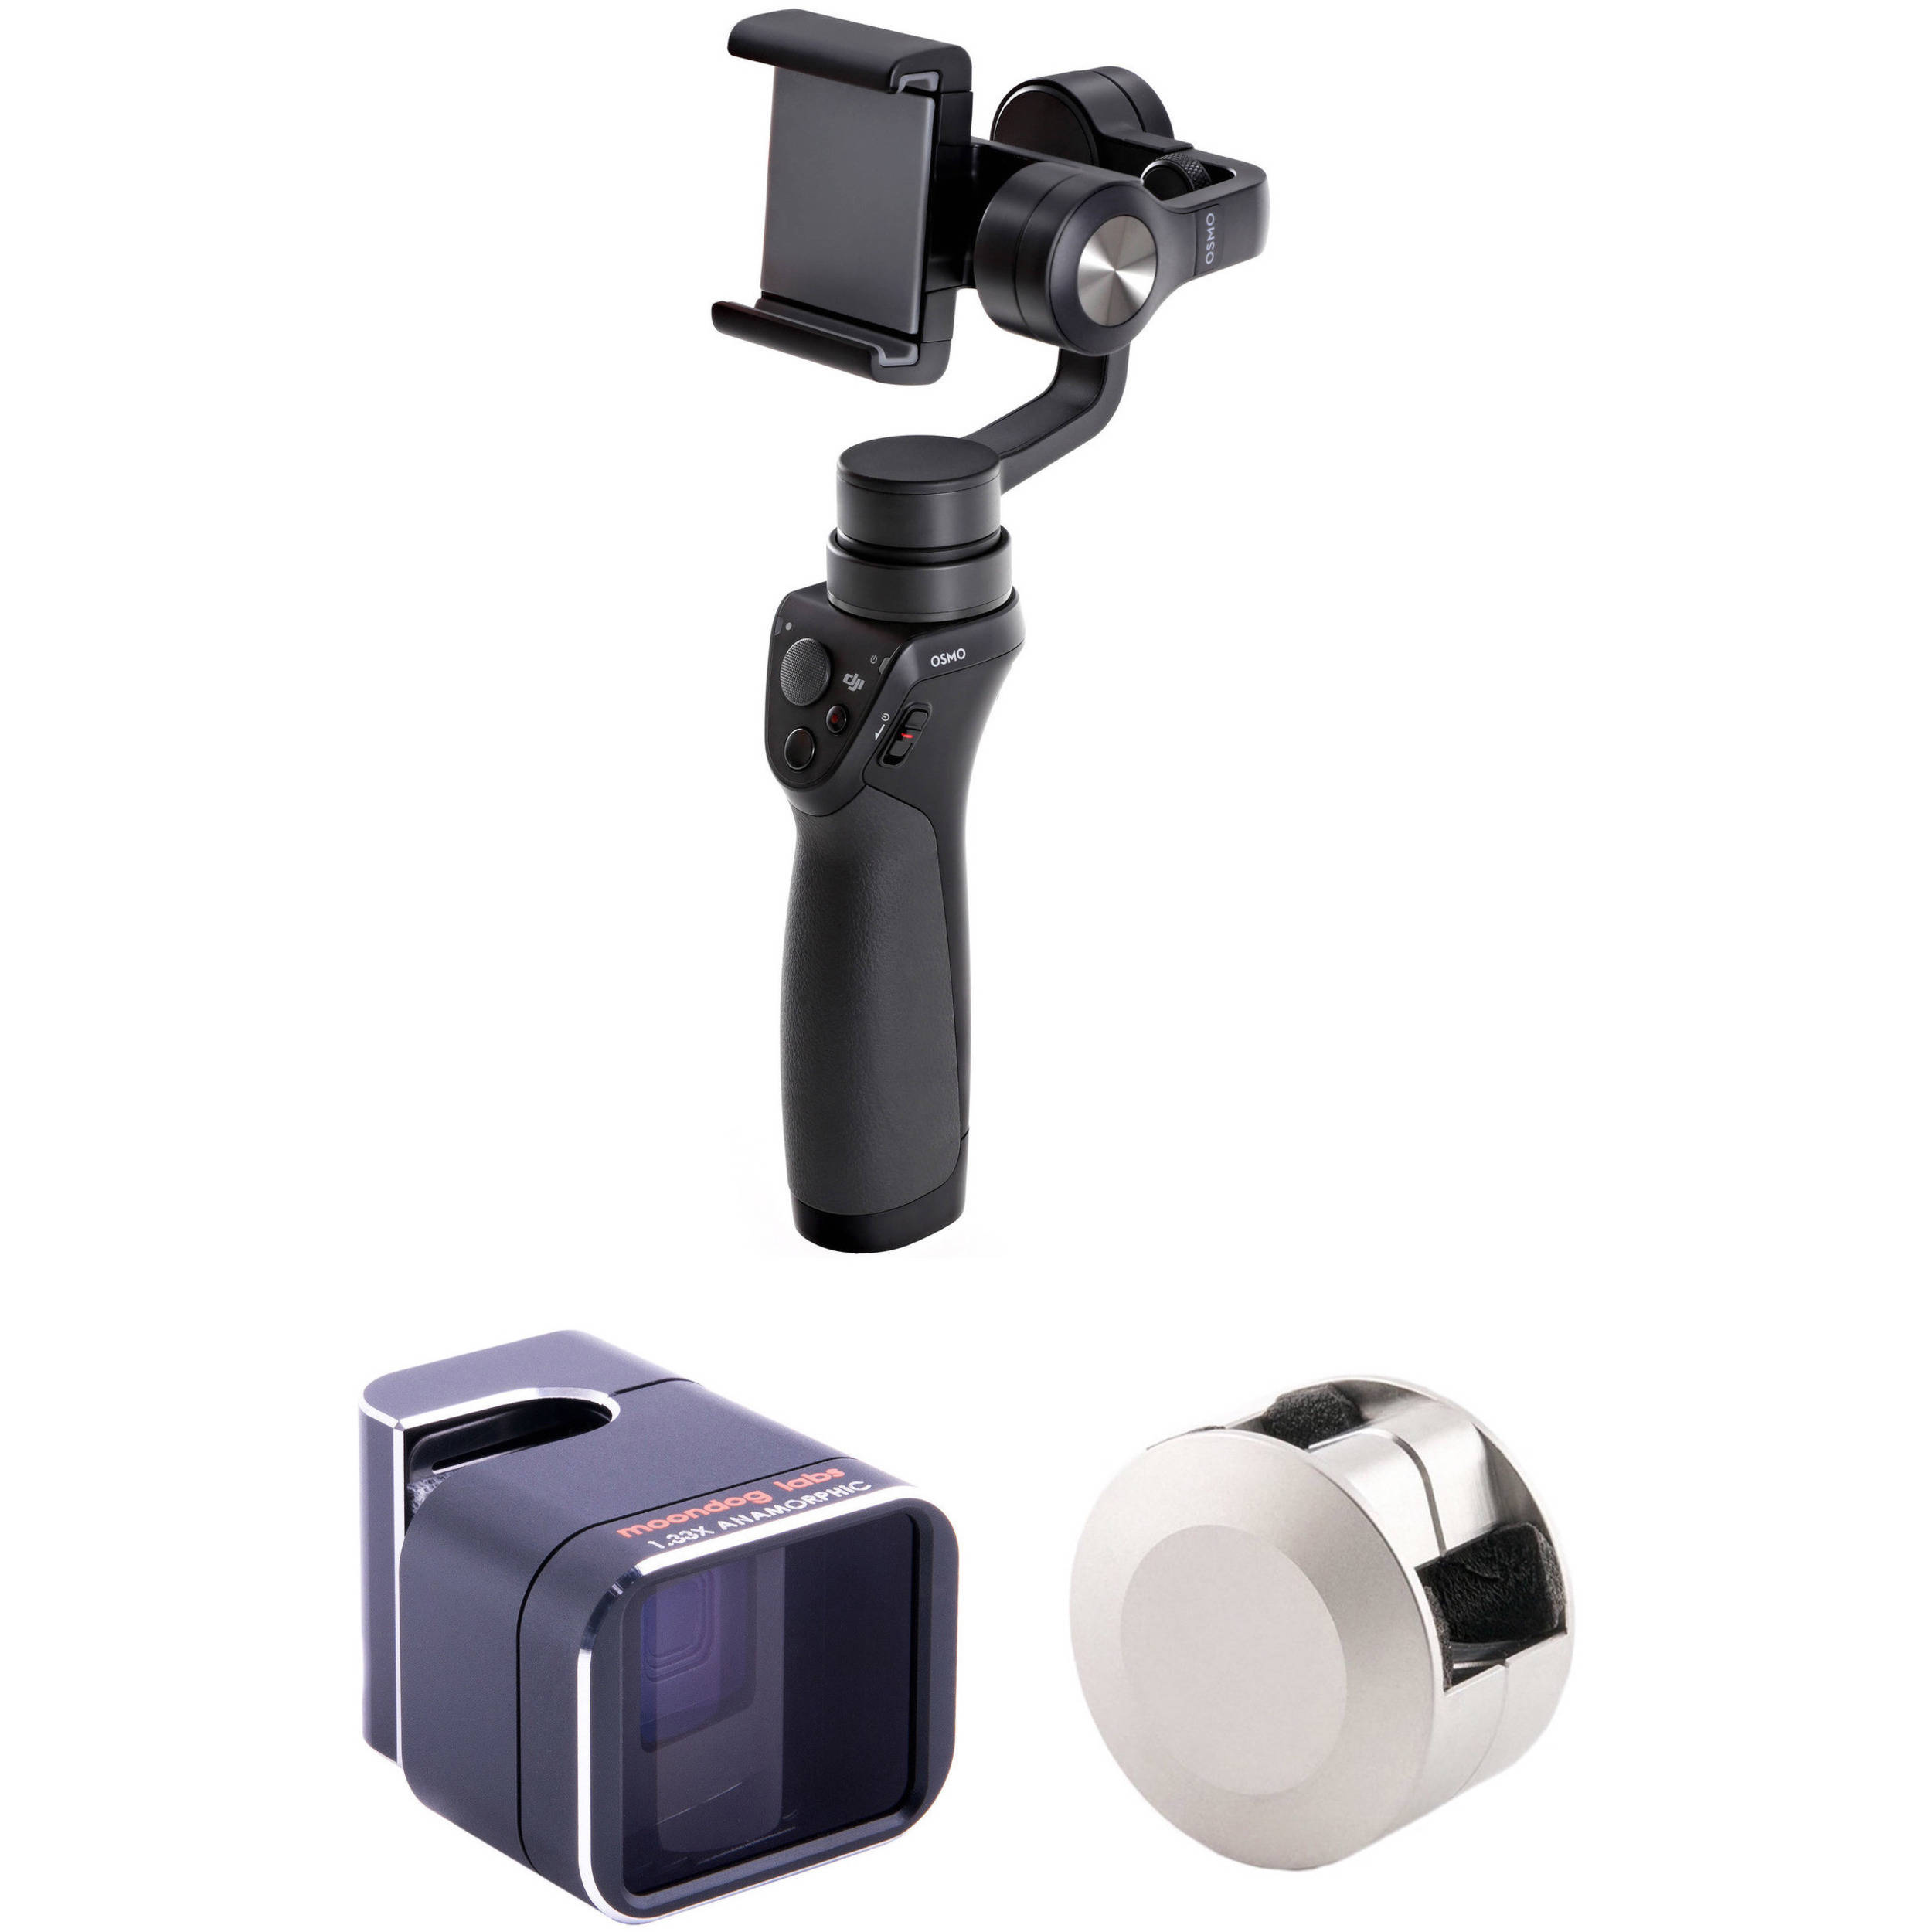 official photos 7e541 bcd0d DJI Osmo Mobile with Adapter Lens Kit for iPhone 6 Plus/6s Plus